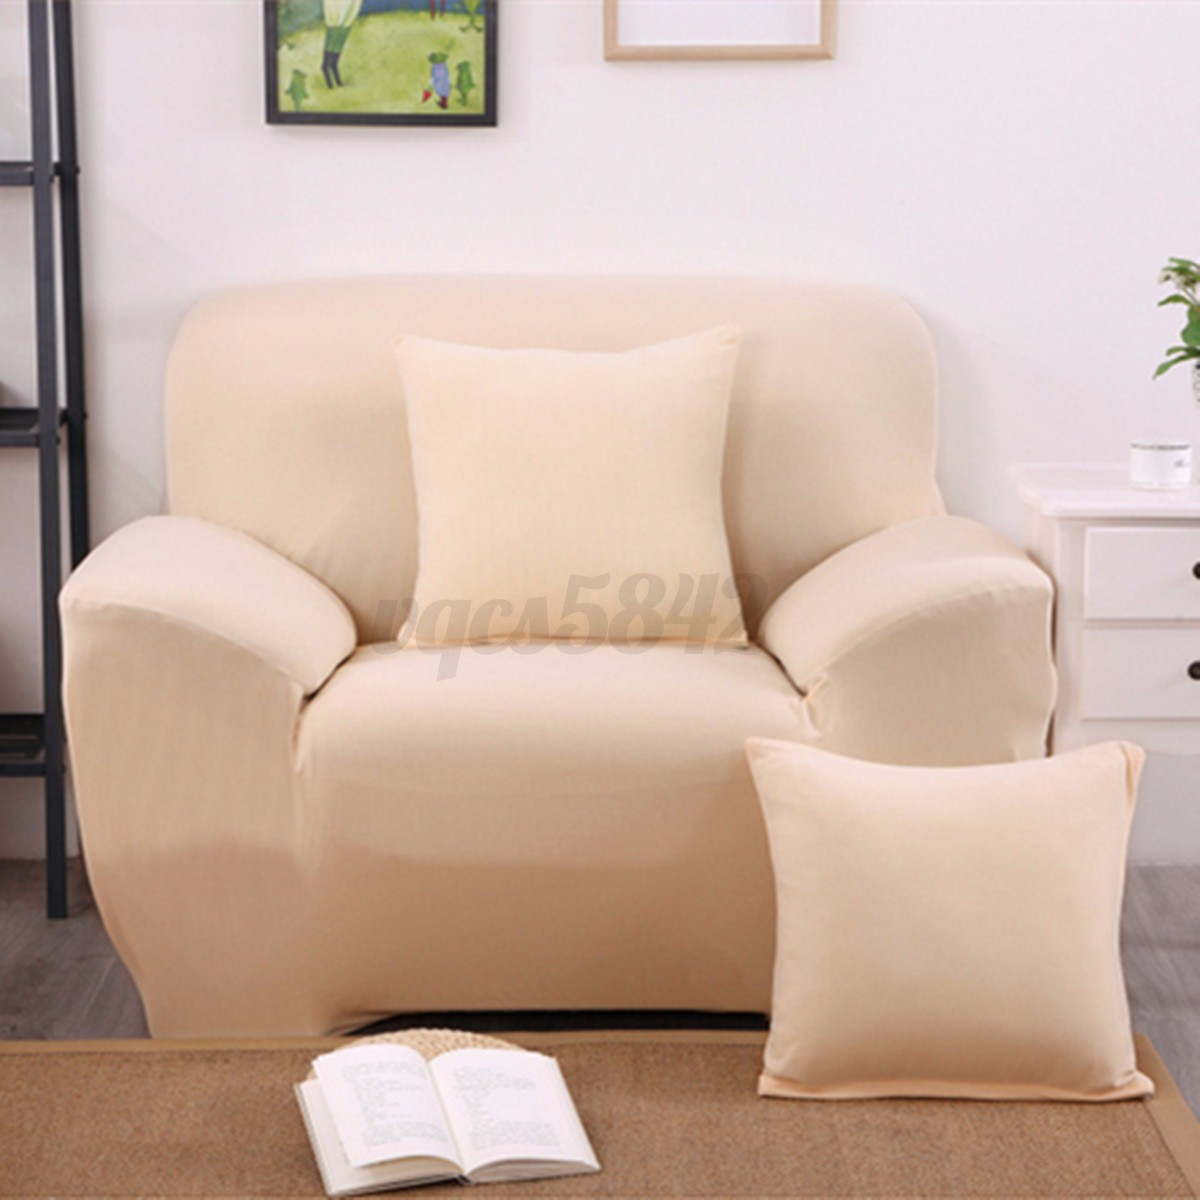 1 2 3 seat l shape sectional sofa couch cover stretch elastic fabric slipcover ebay. Black Bedroom Furniture Sets. Home Design Ideas